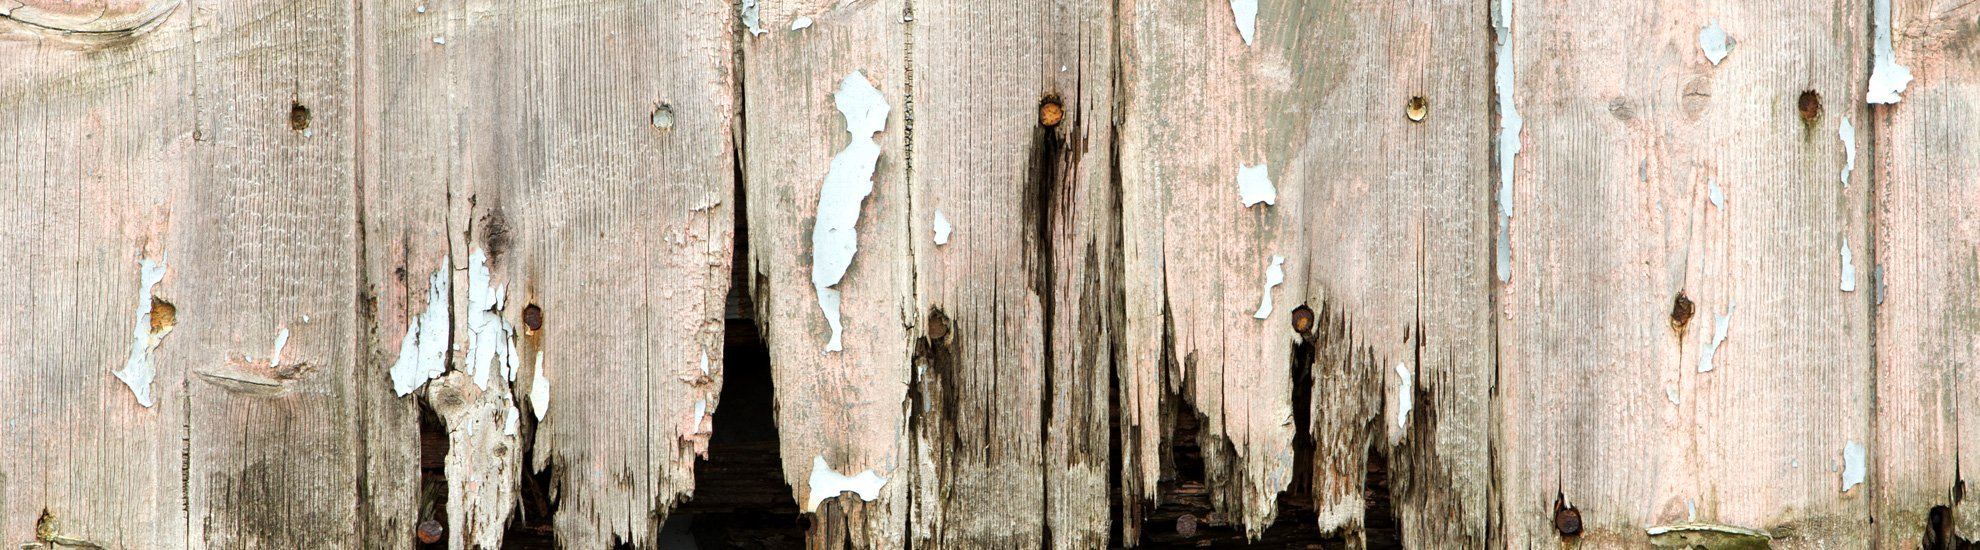 damaged timber